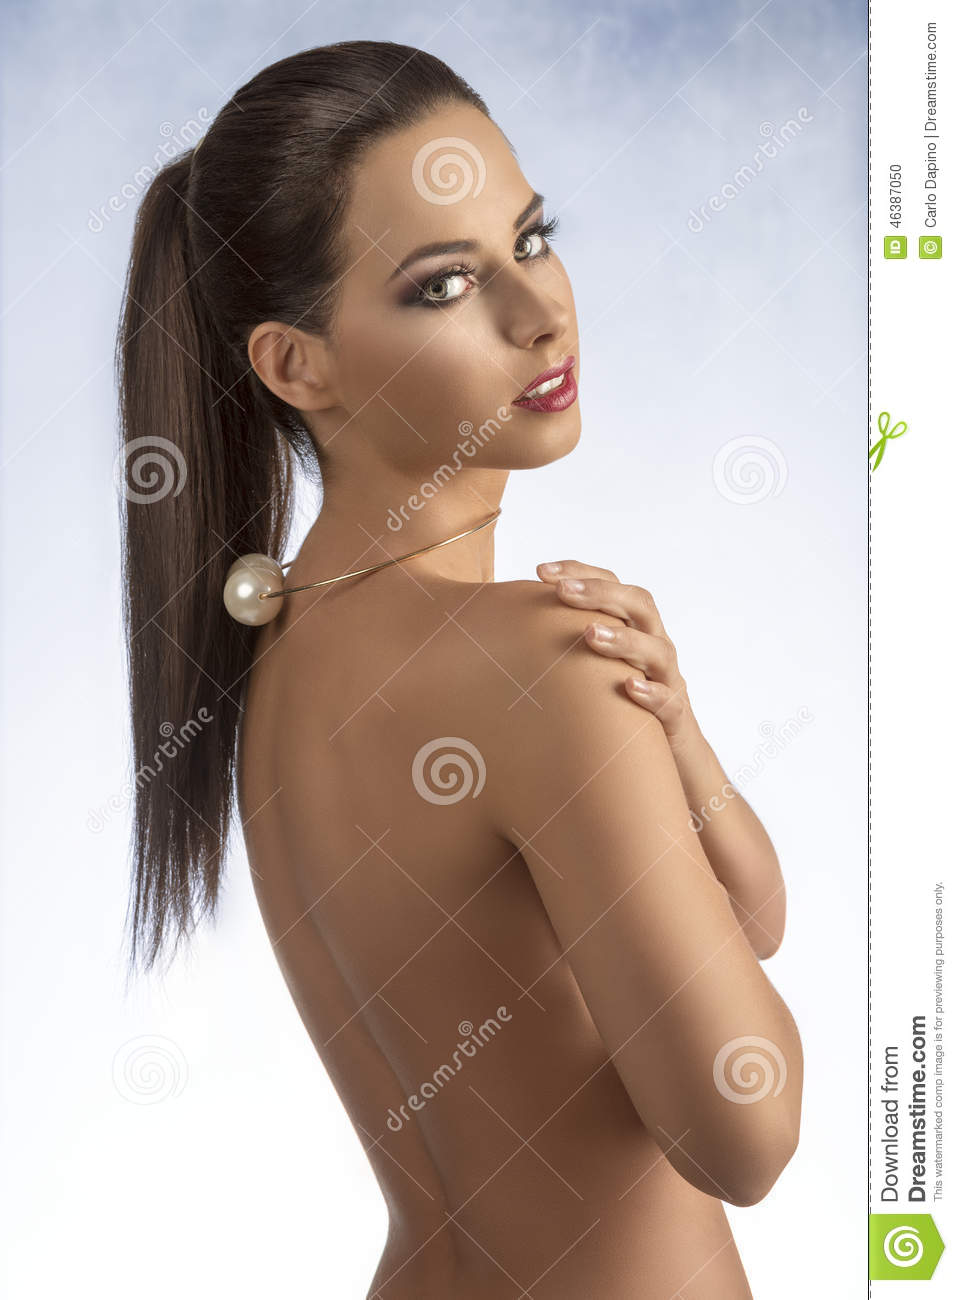 woman showing her nude back stock photo - image of accessory